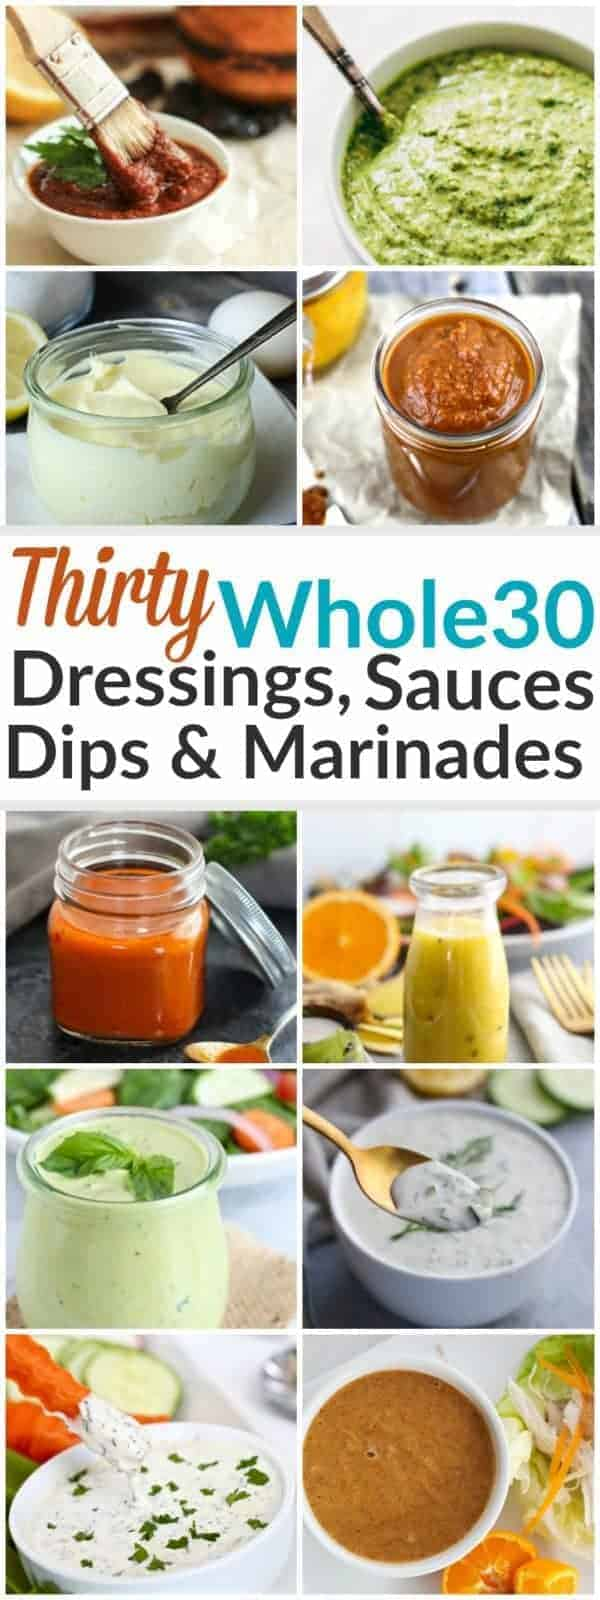 pinterest image for 30 Whole30 Dressings, Sauces & Marinades